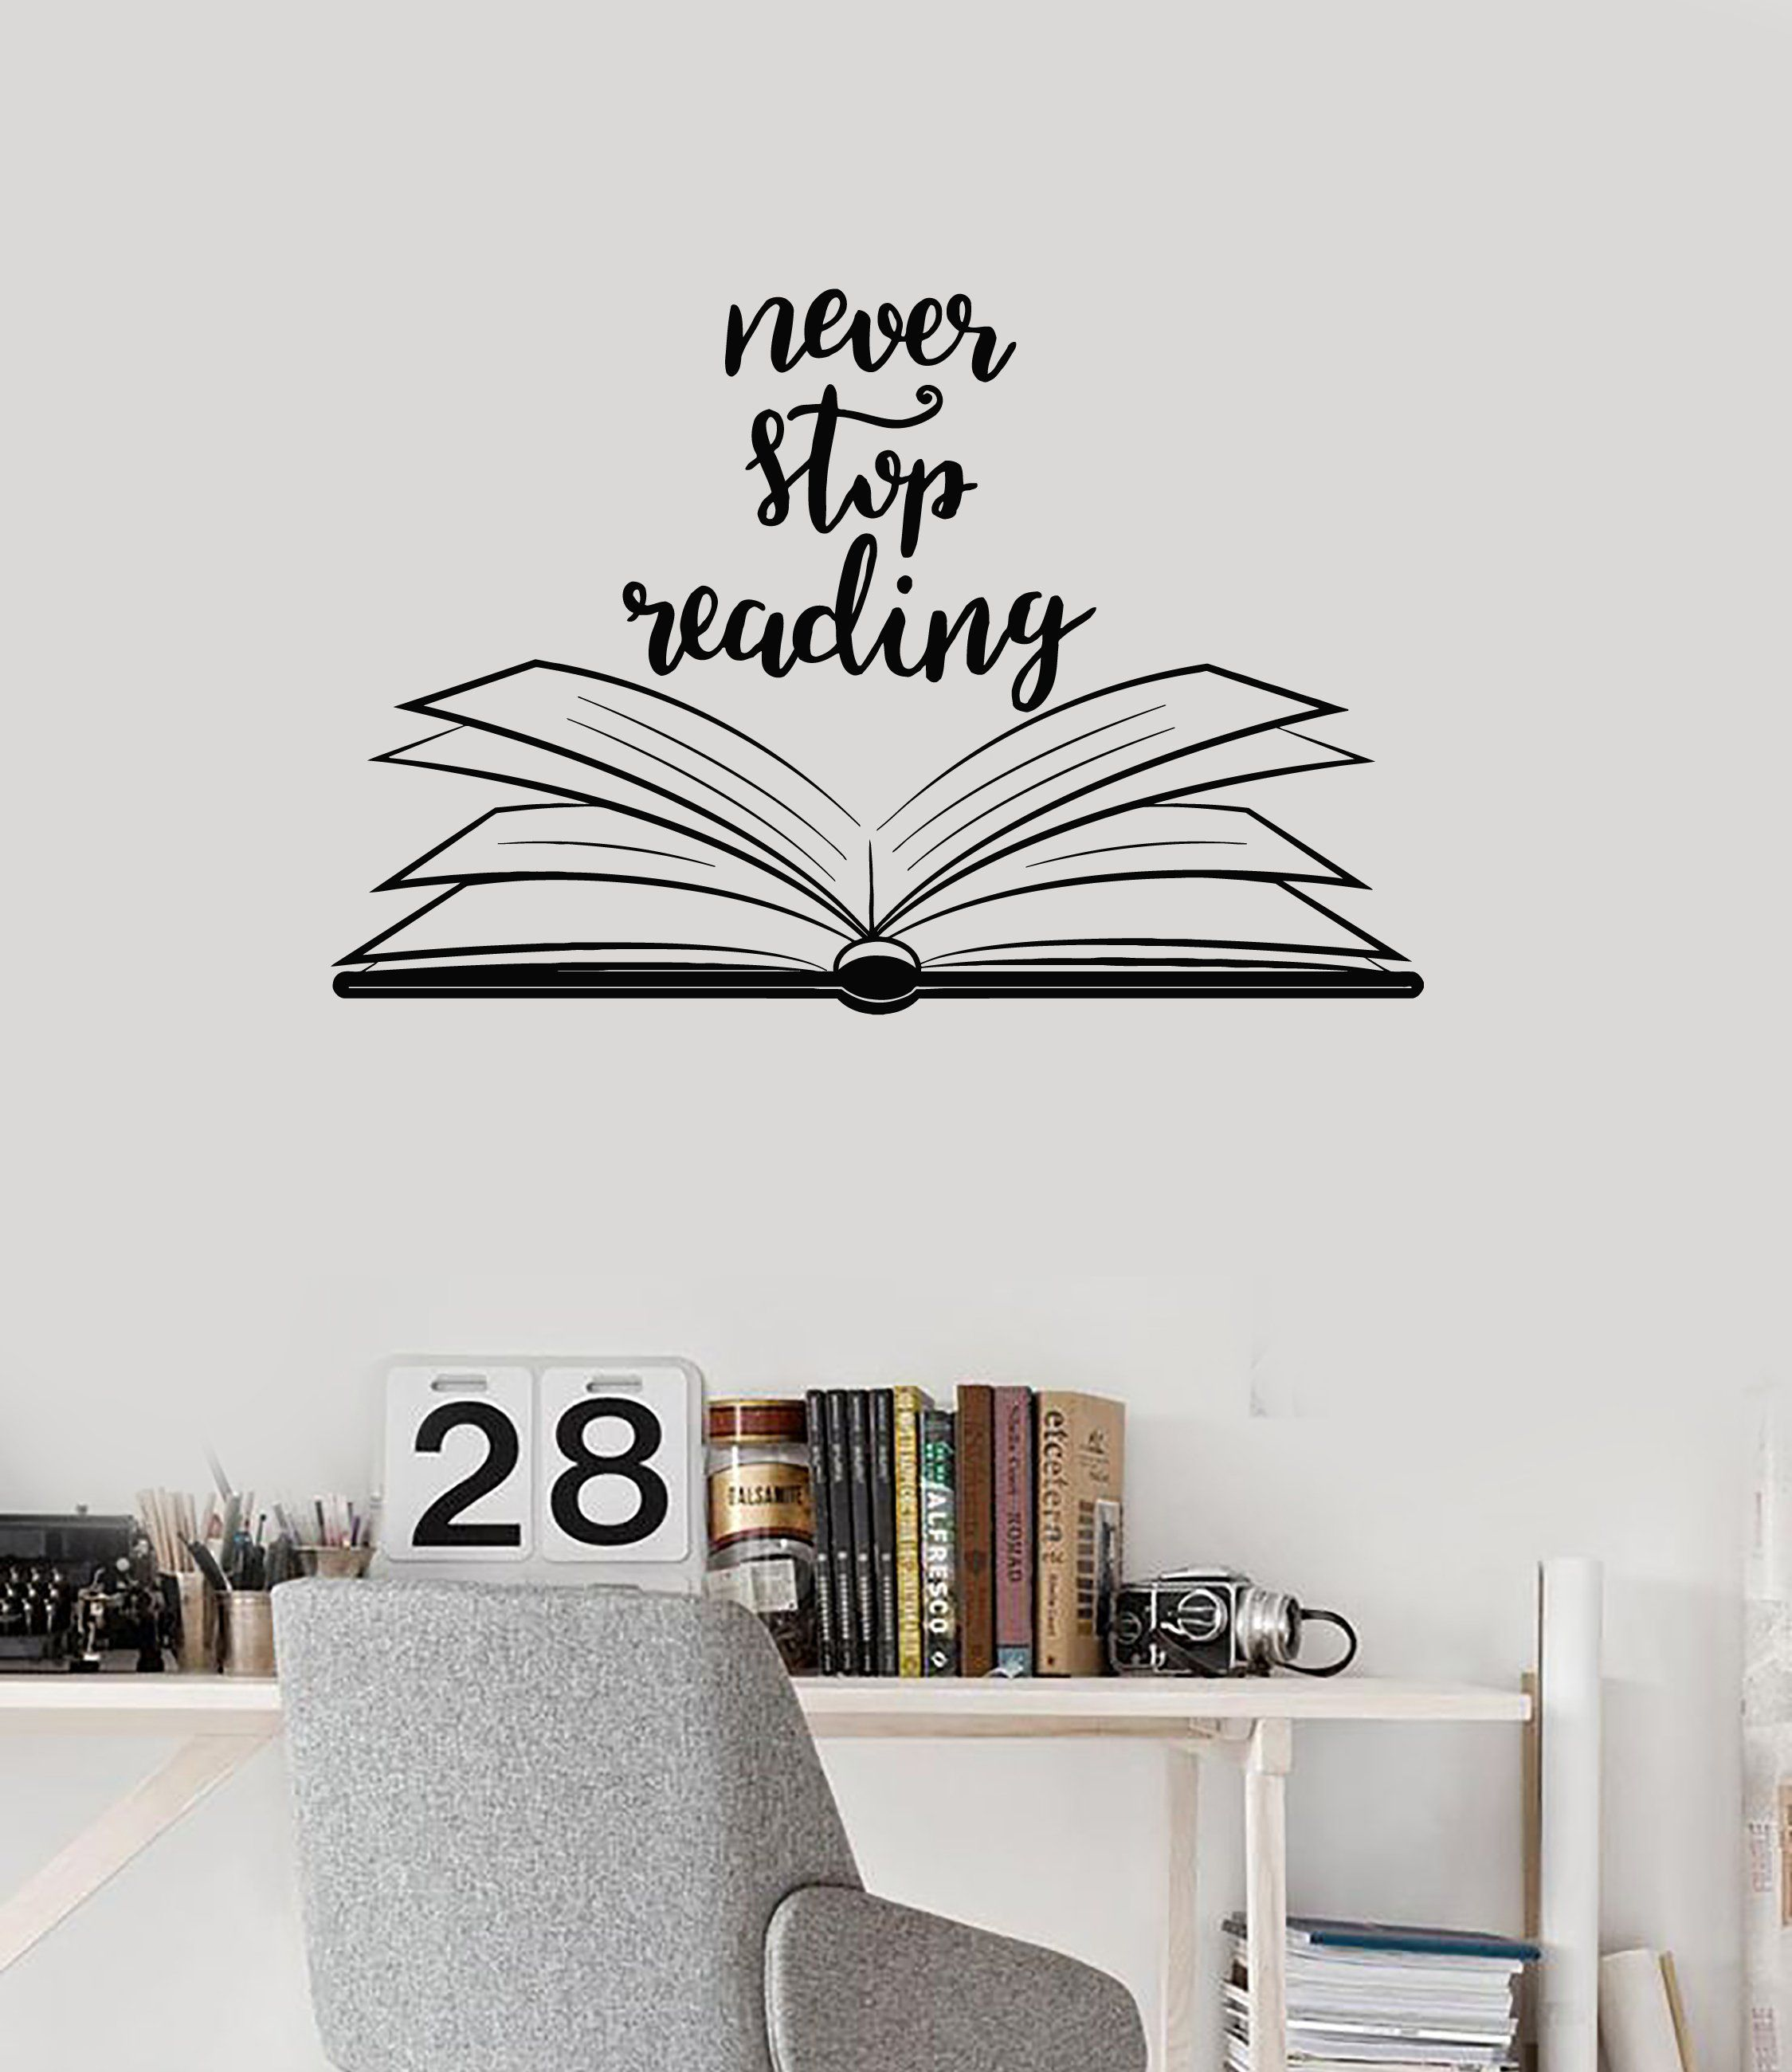 Vinyl wall decal open book quote reading room library decor stickers mural ig5184